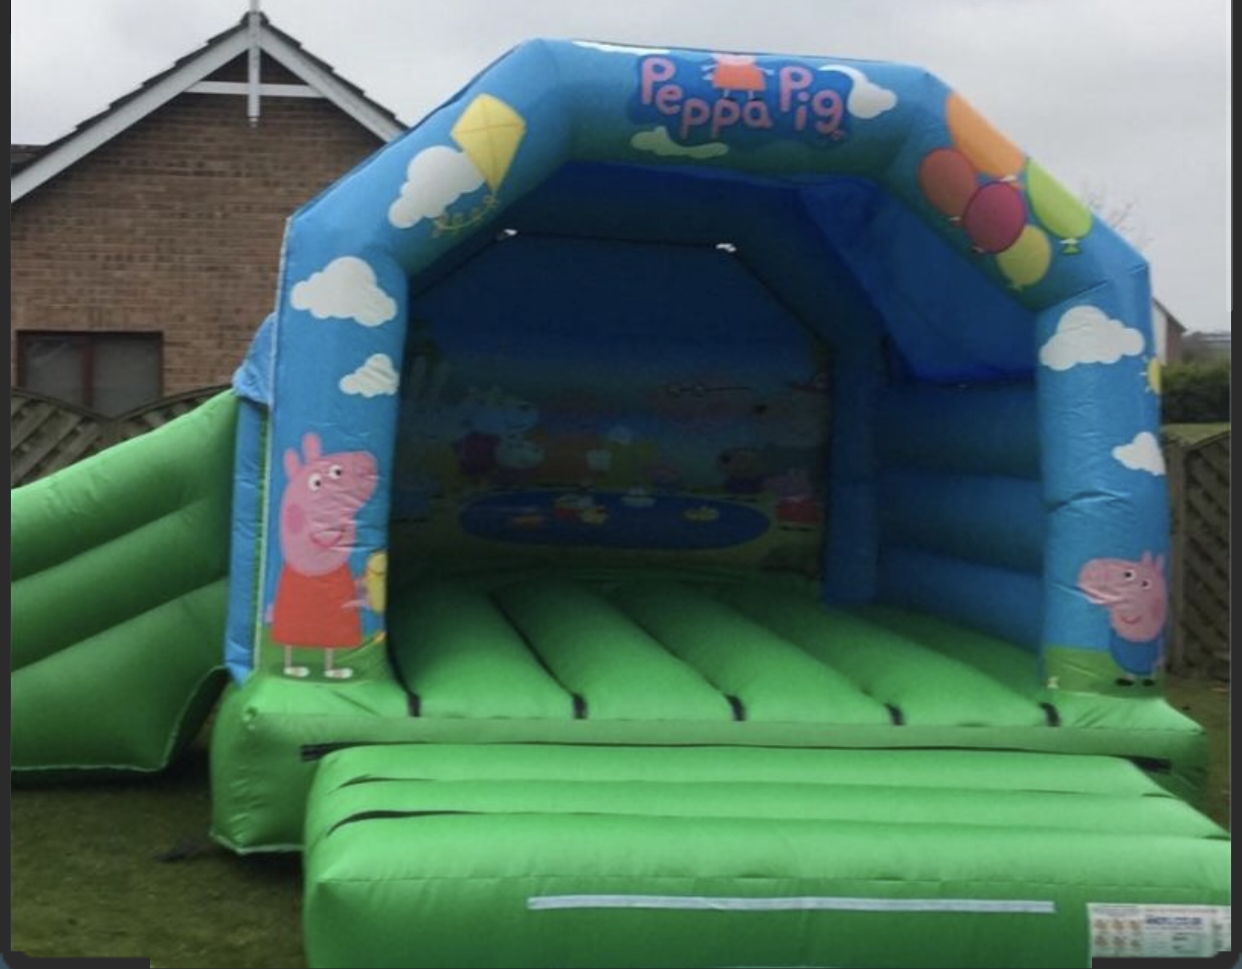 bouncy castle hire whitstable, Herne bay, Faversham, Canterbury